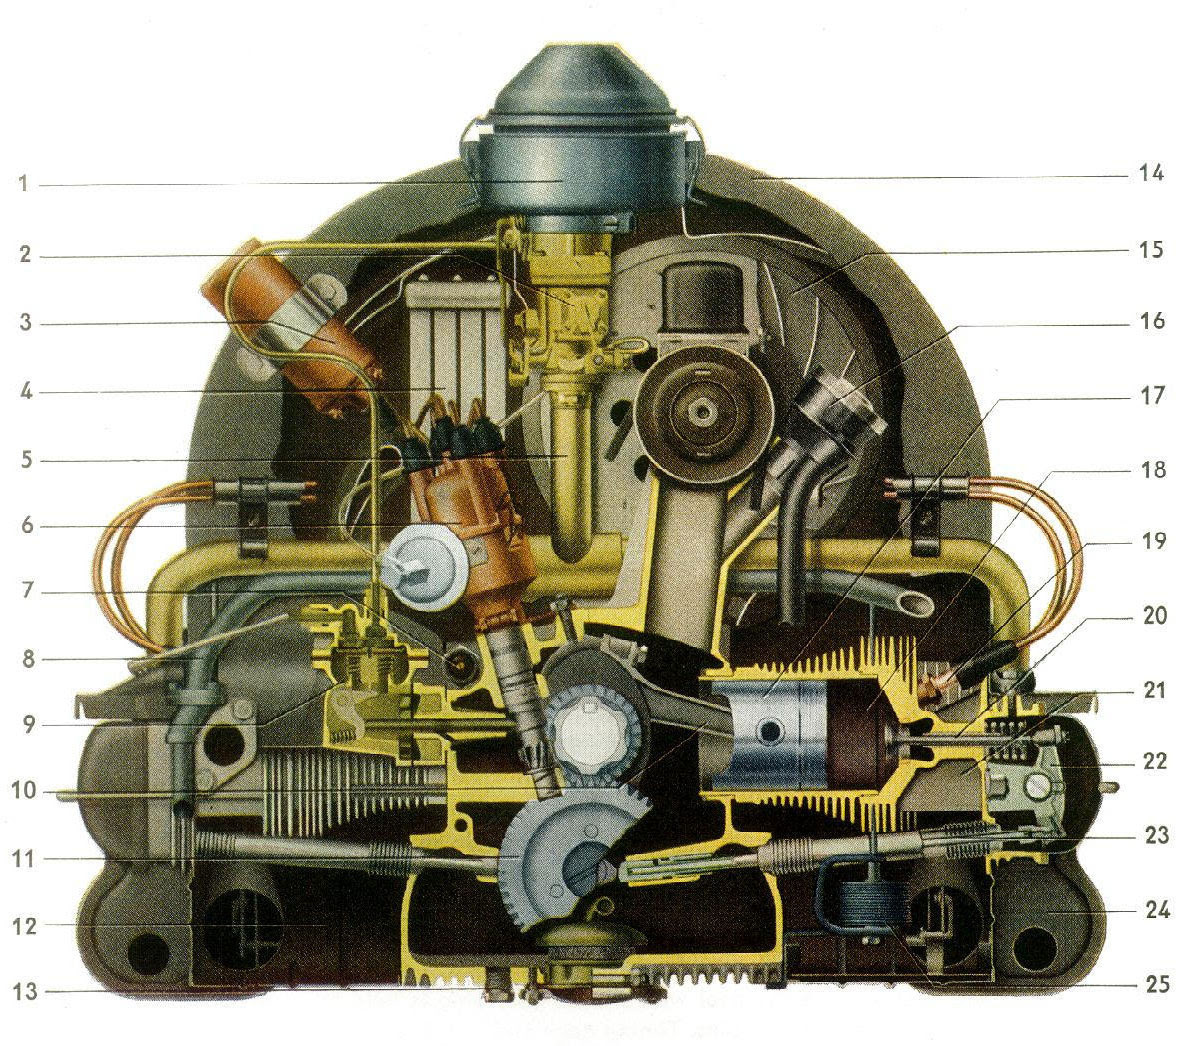 Vw Thing Engine Diagram Wiring Diagrams Community Community Miglioribanche It